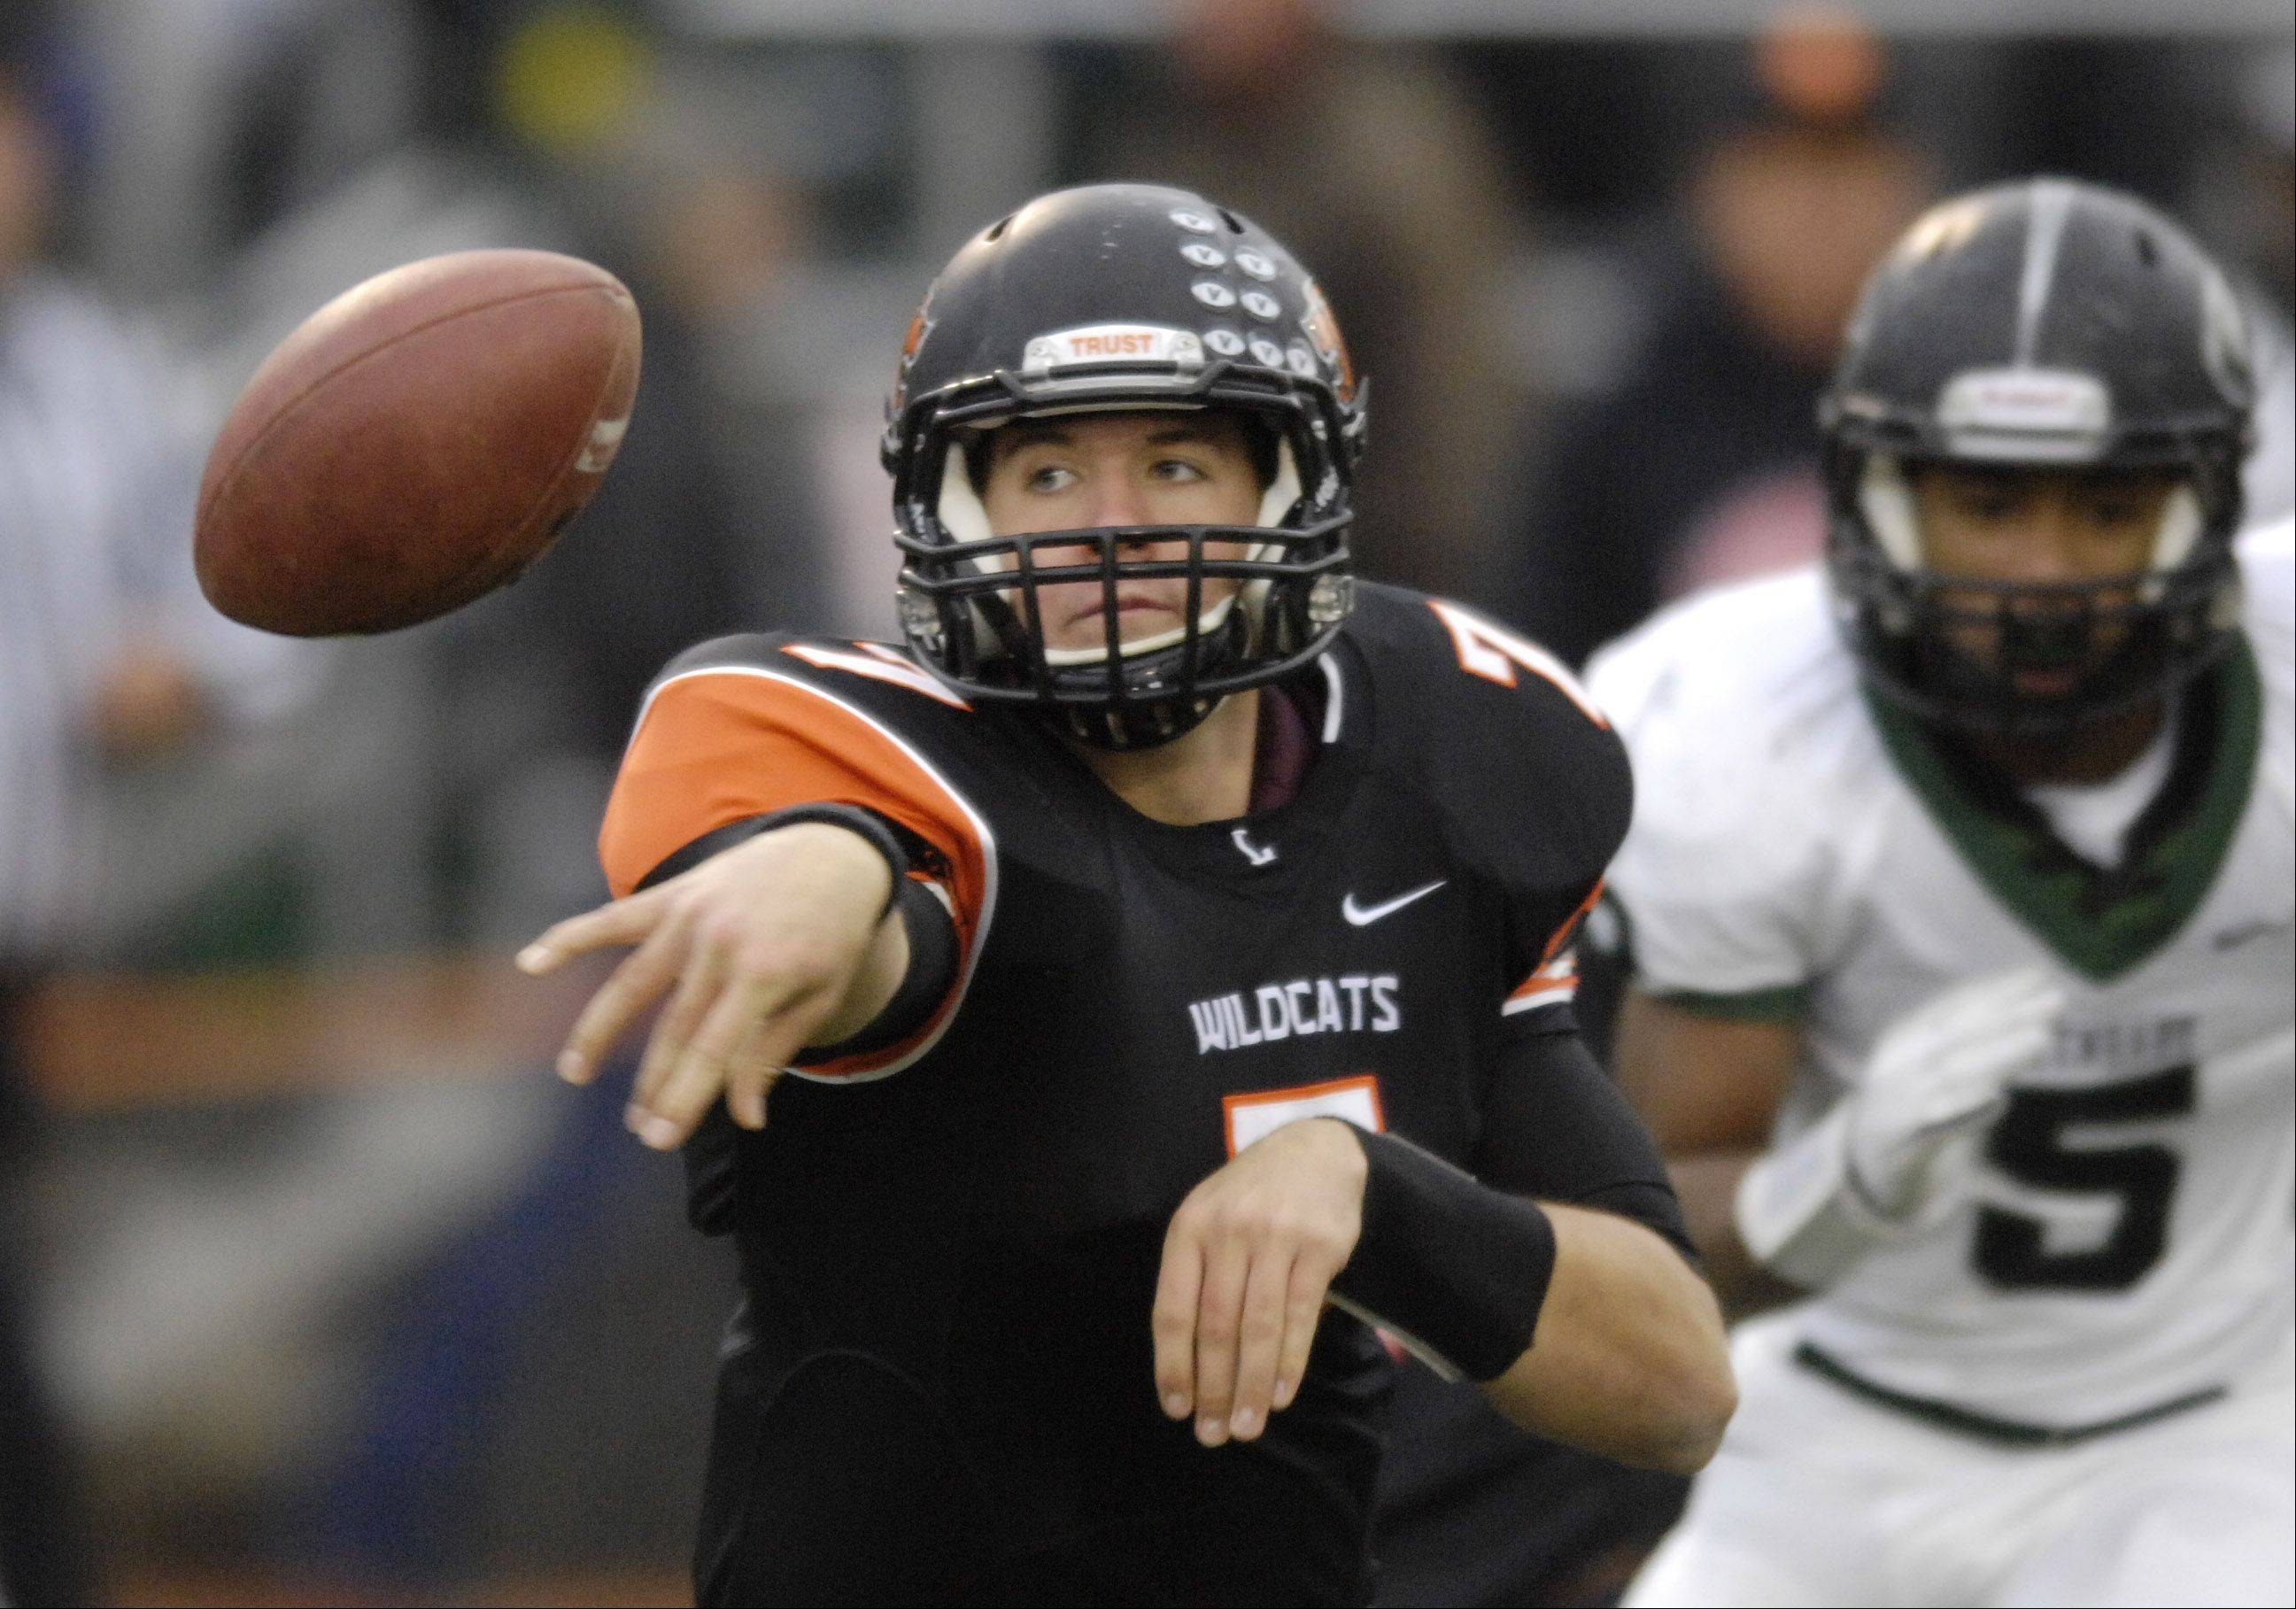 Libertyville quarterback Jack Deical makes a lateral during Saturday's game against Glenbard West.